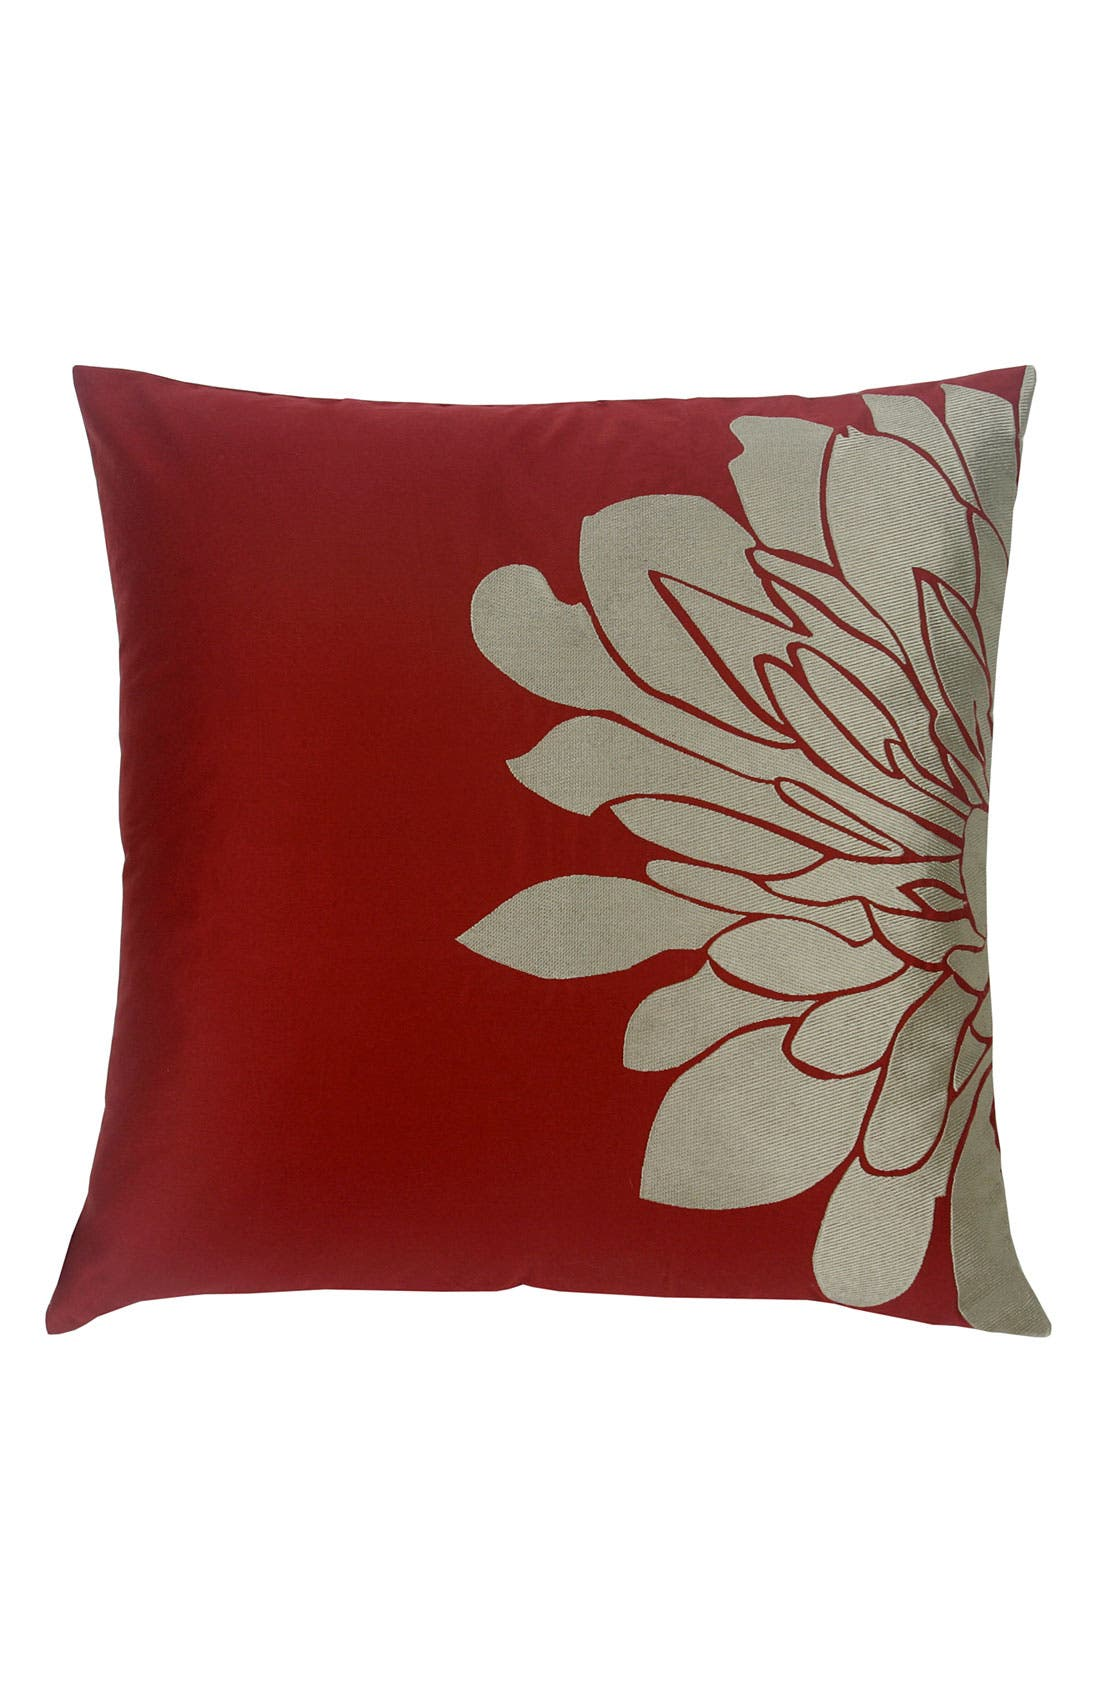 Alternate Image 1 Selected - Blissliving Home 'Gemini Red' Pillow (Online Only)